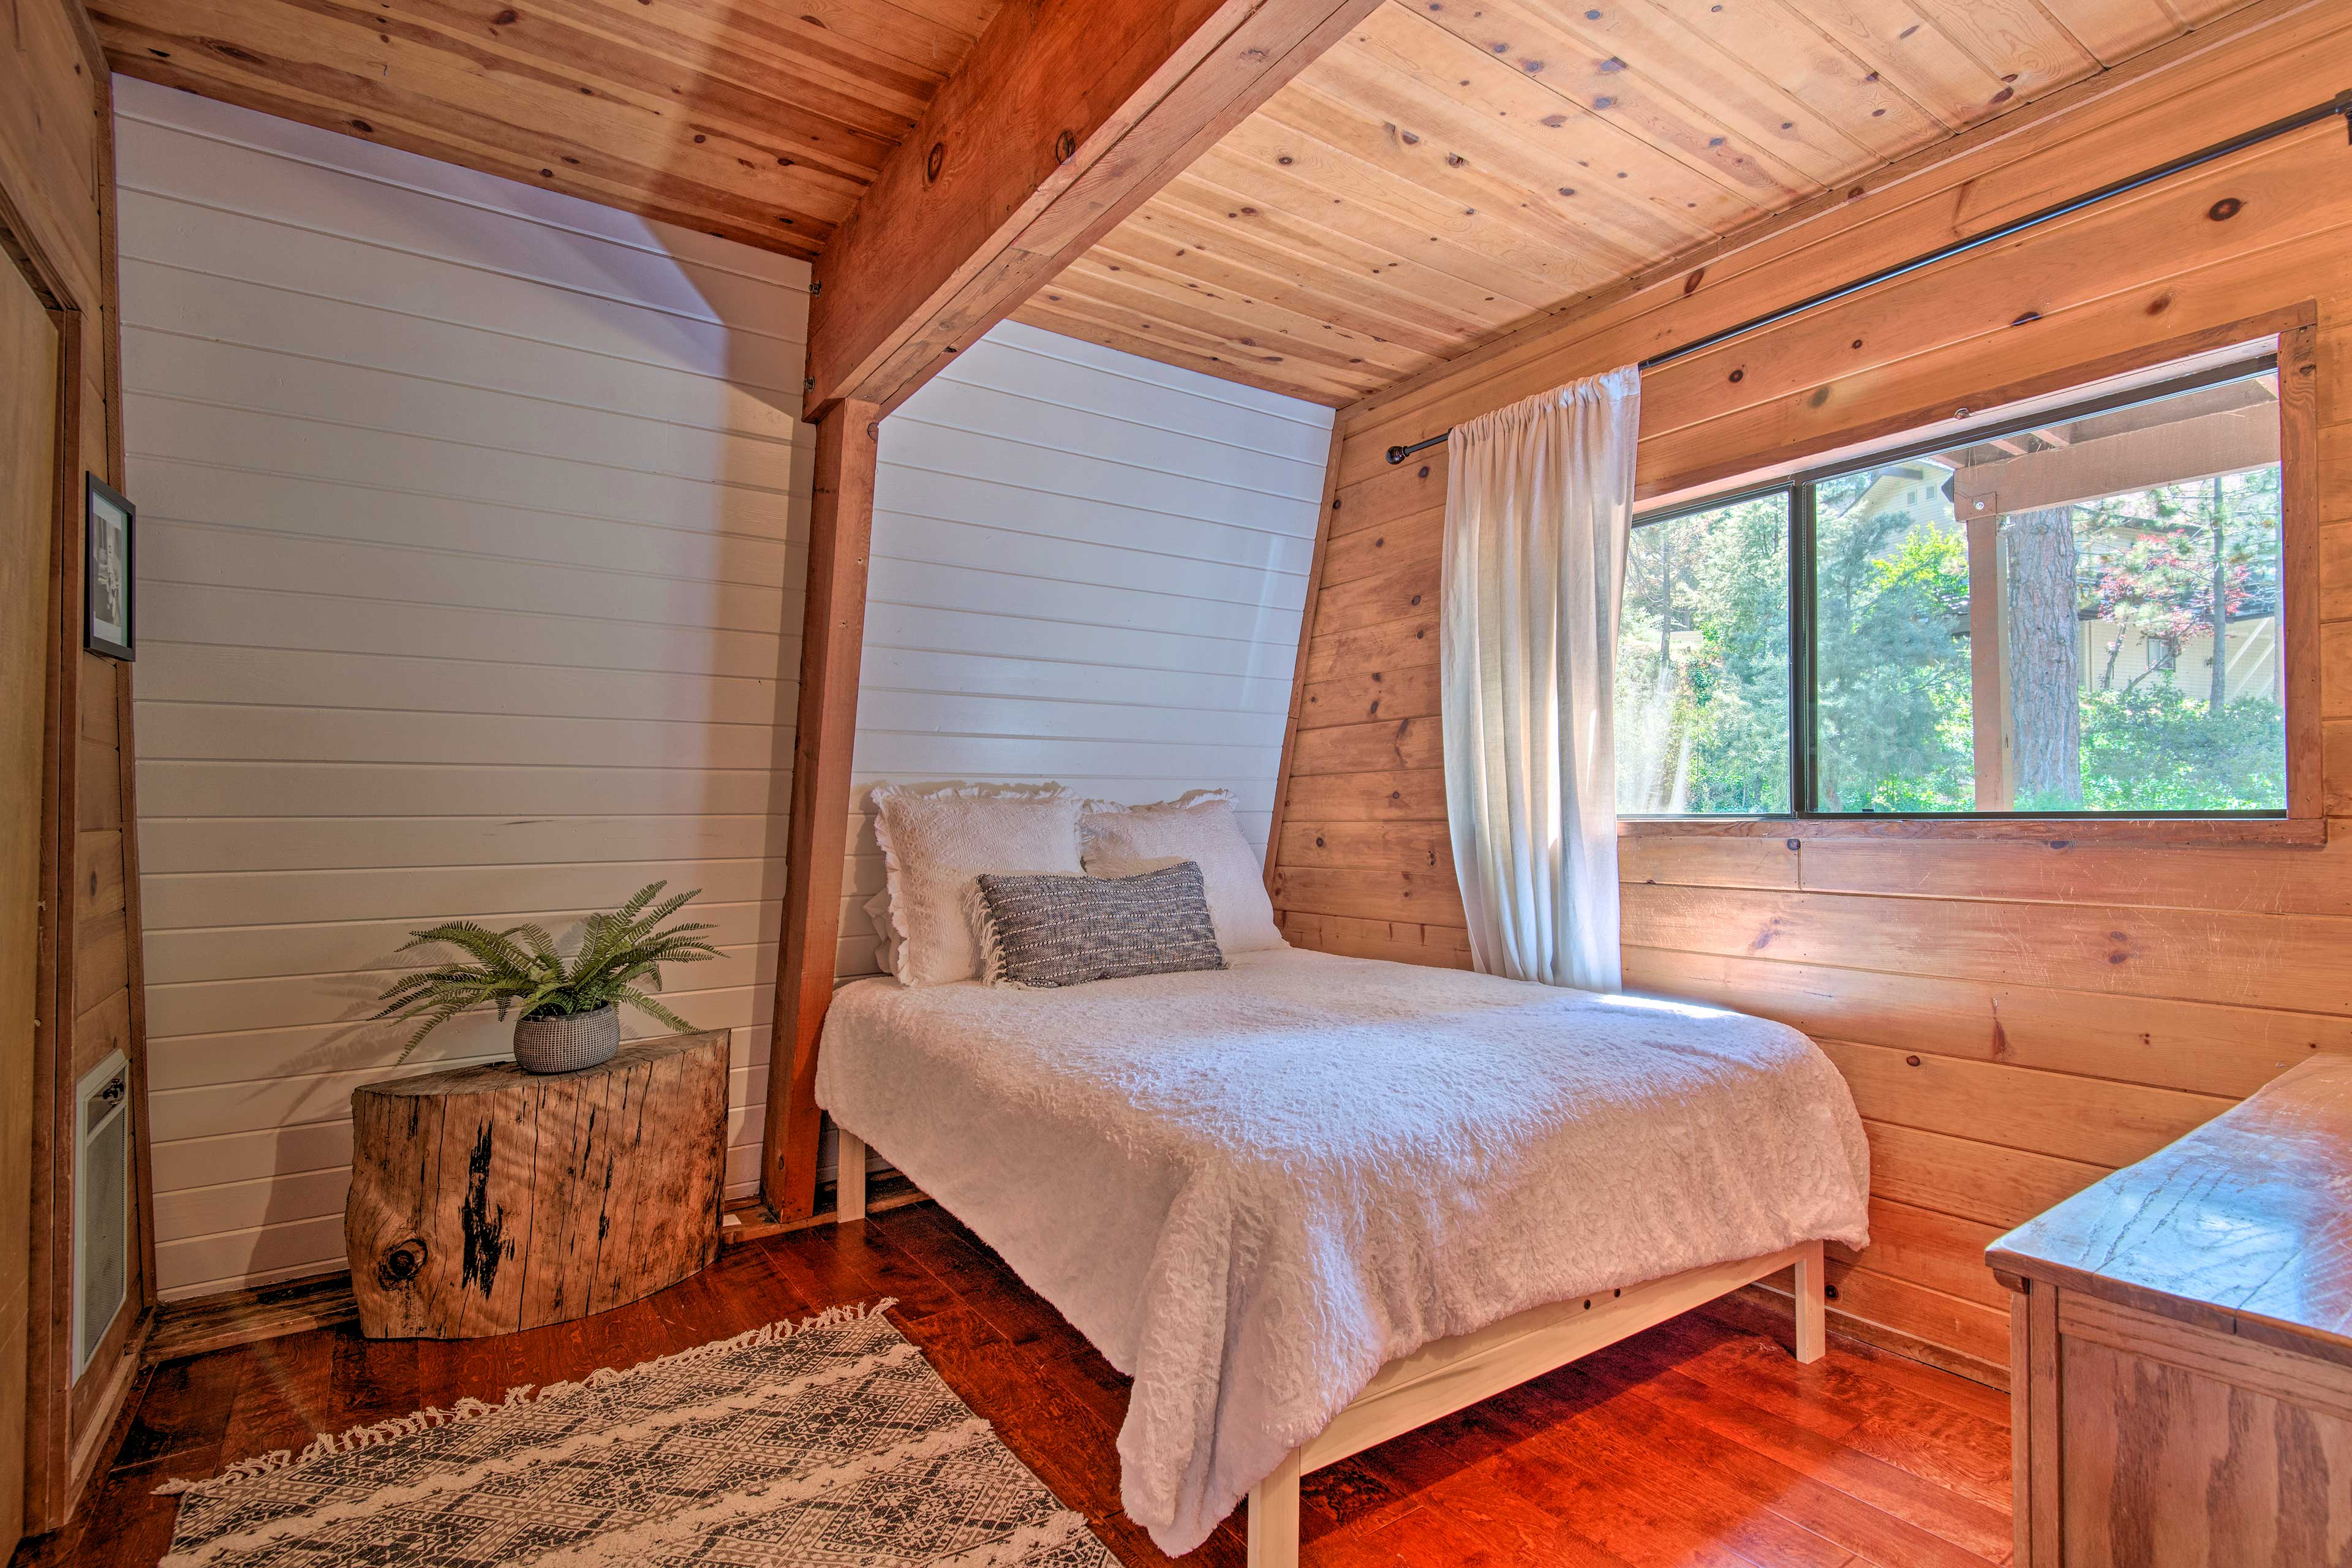 The second bedroom boasts a queen bed for 2!